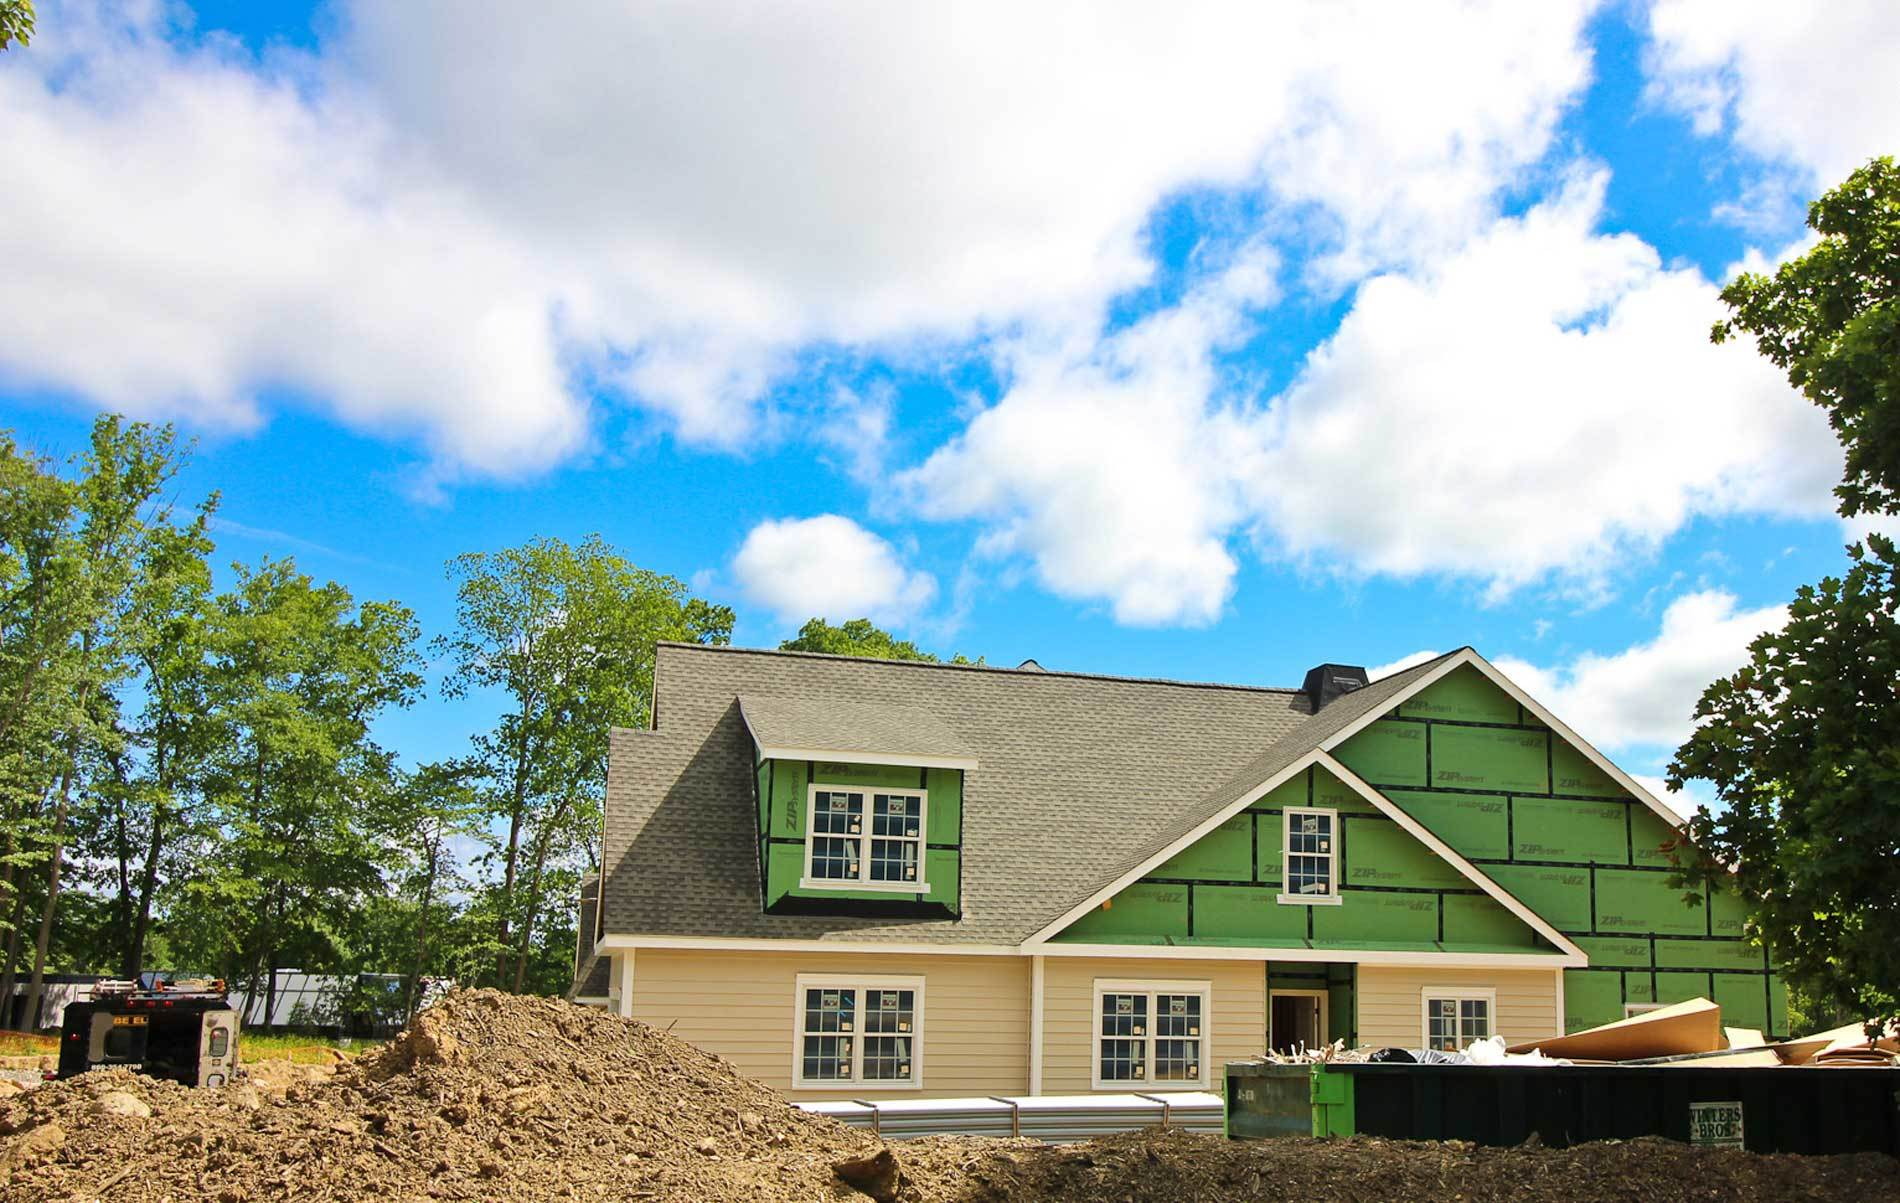 New construction homes for sale in wilton ct newly built for Building a house in ct